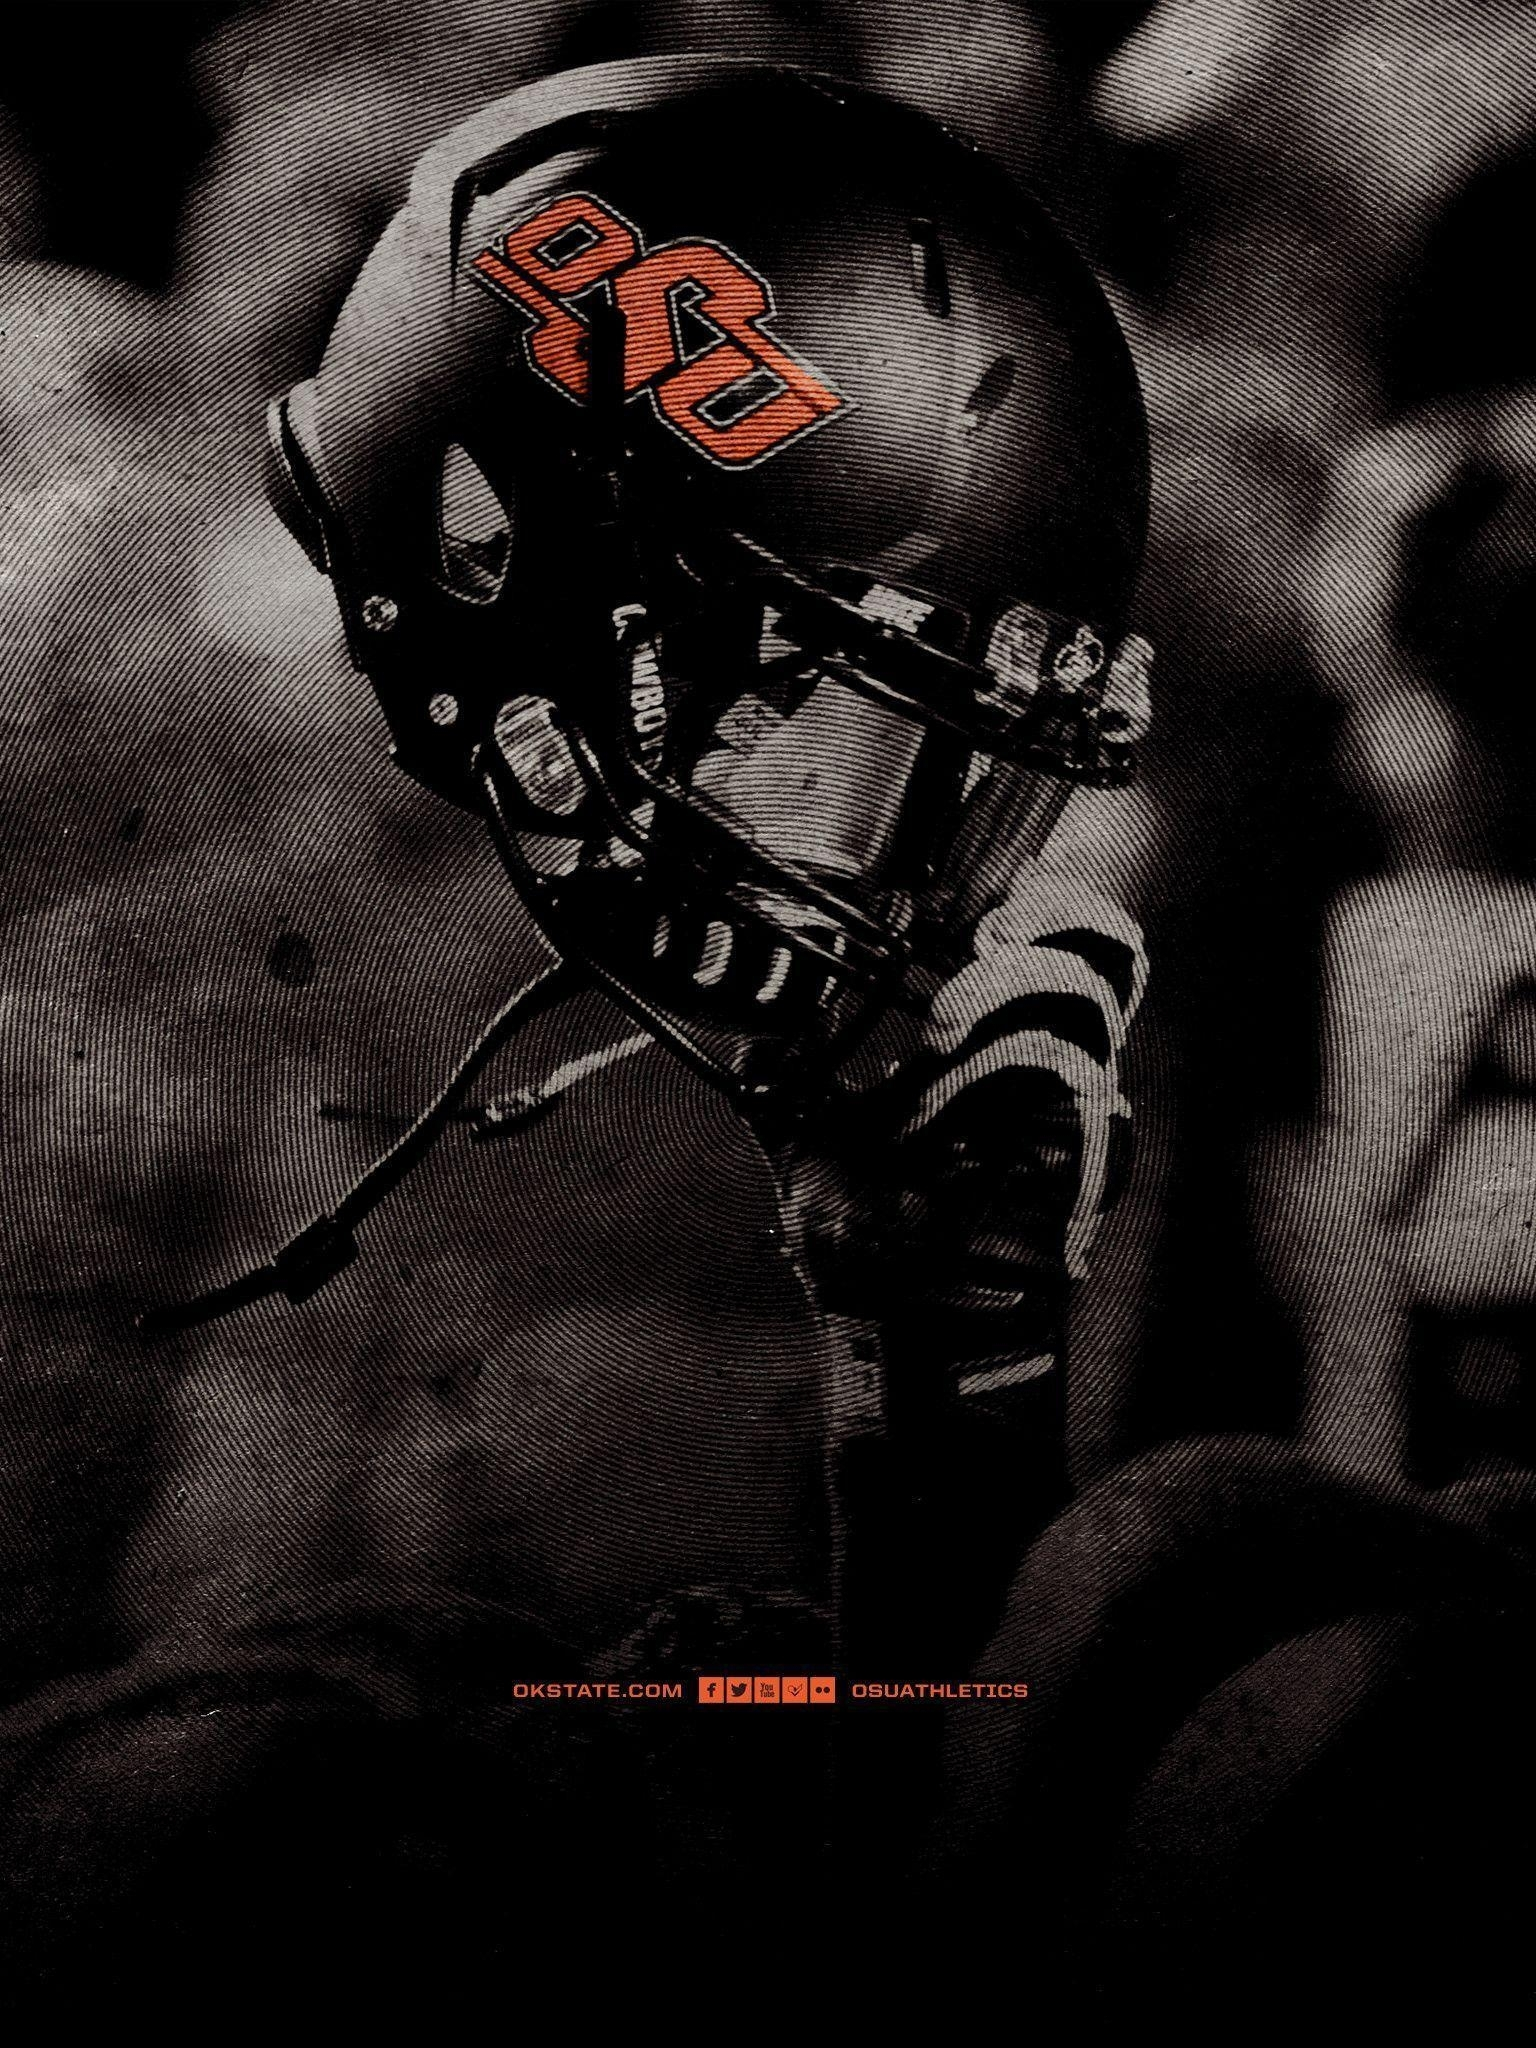 10 Top Oklahoma State Iphone Wallpaper FULL HD 1080p For PC Background